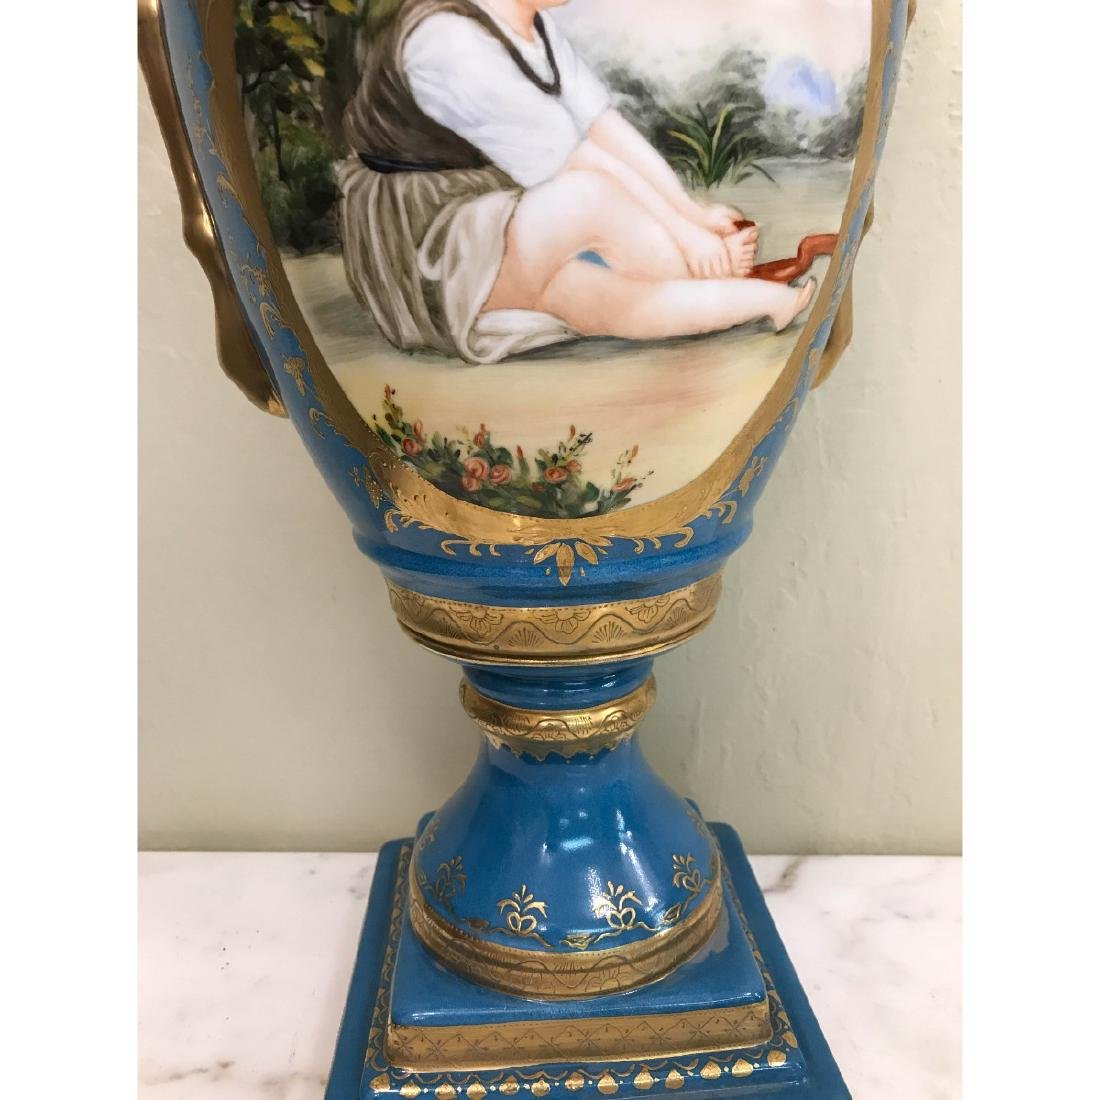 Art Deco Porcelain Vase w/ 24k Leaf, Scenery - 3